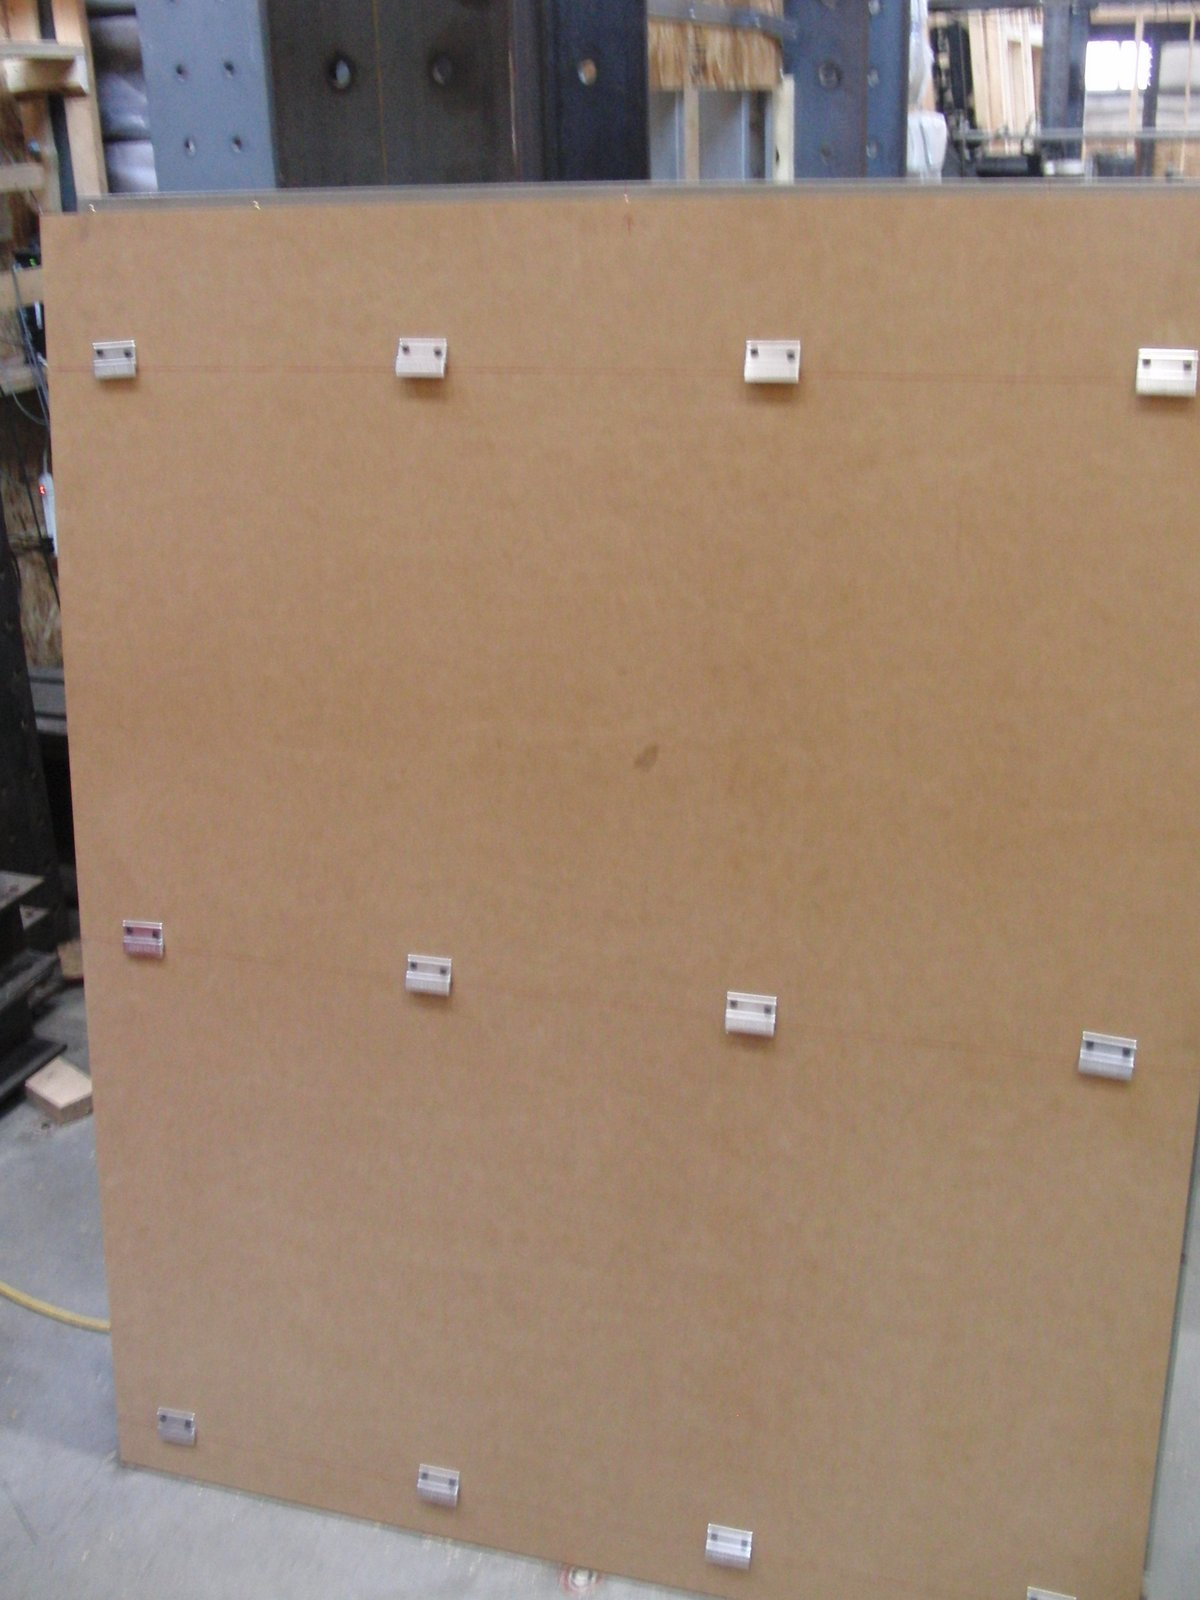 Metal Panel Clip System : Monarch metal panel mounting clip system tests at a